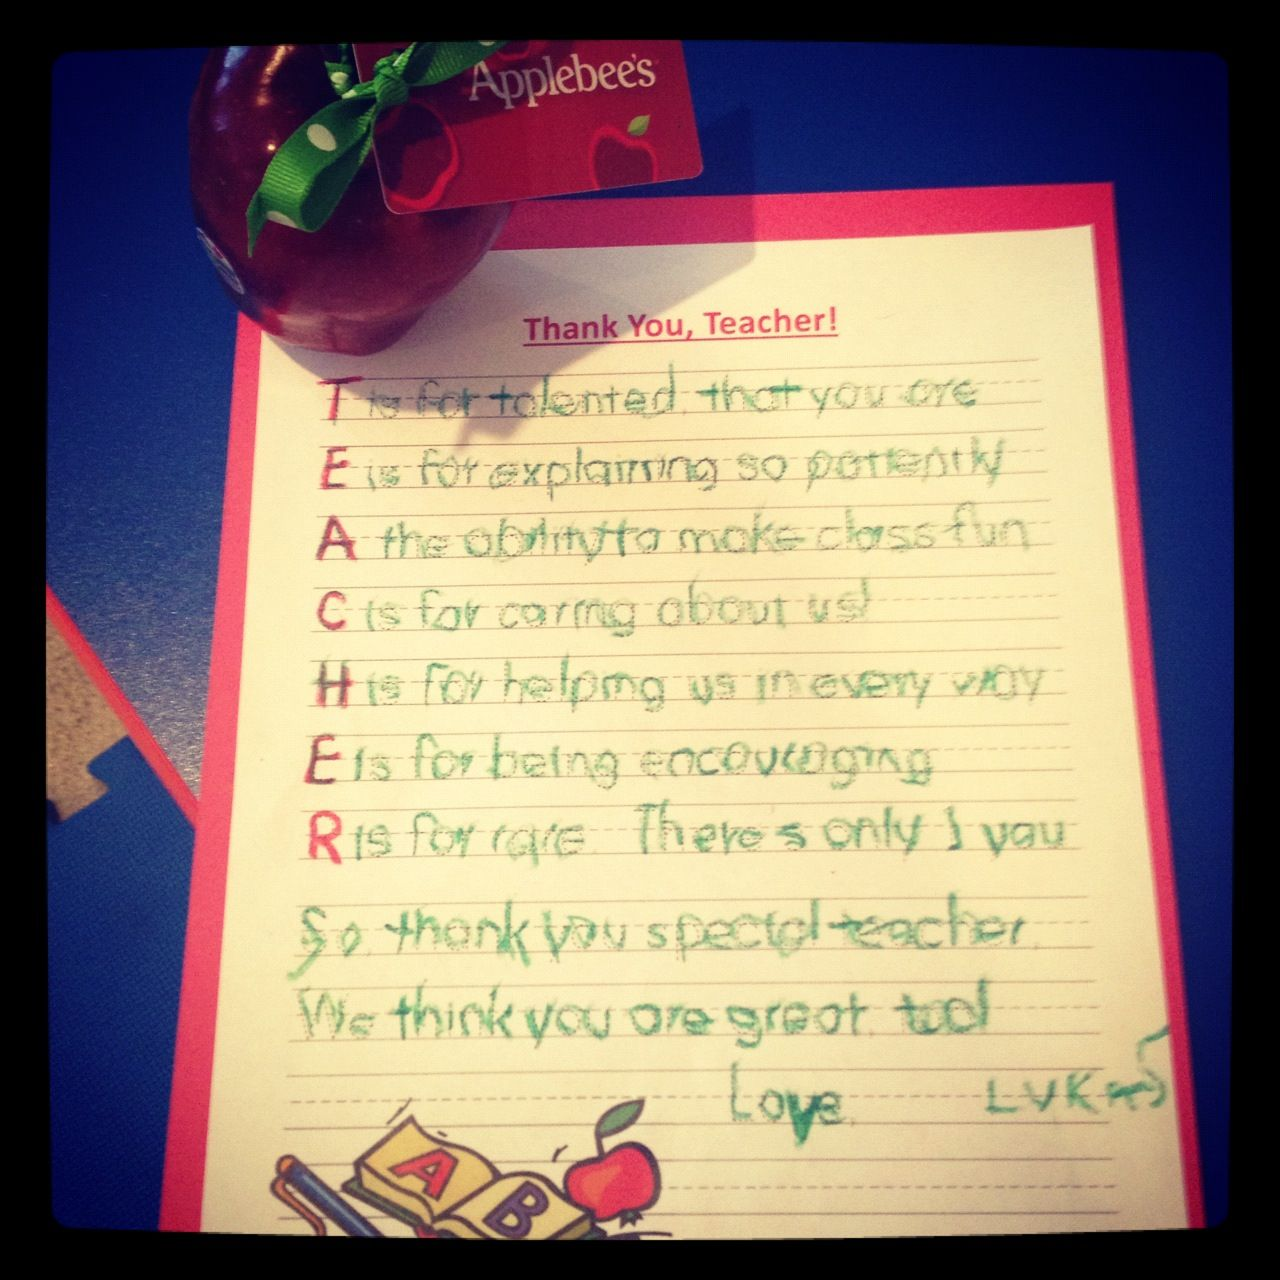 Teacher Appreciation Day •) Cute letter to teacher with